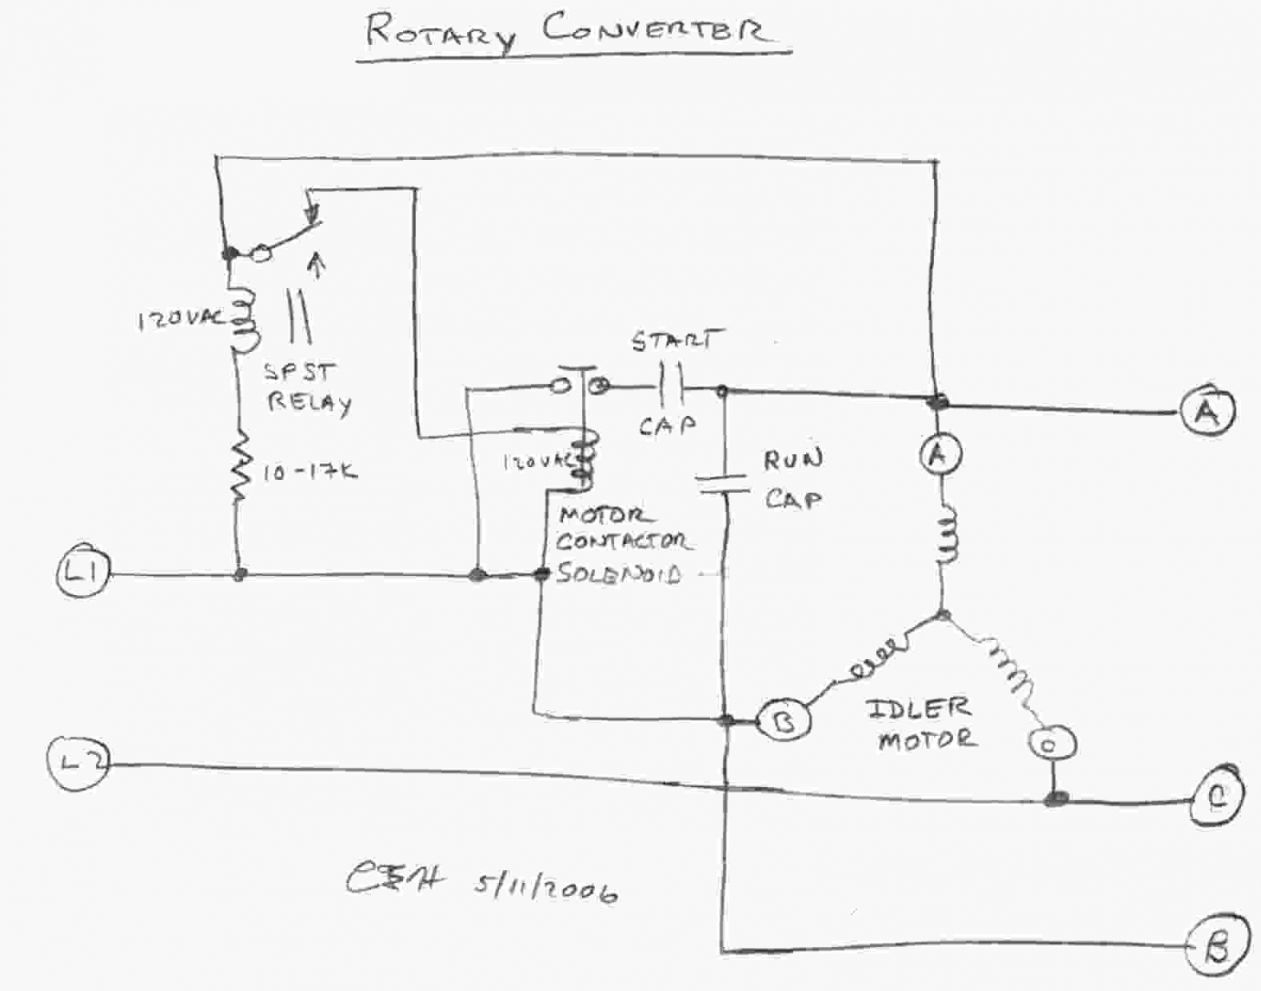 3 phase rotary converter wiring diagram download rh wholefoodsonabudget com 3 phase static converter wiring diagram 3 phase motor inverter wiring diagram